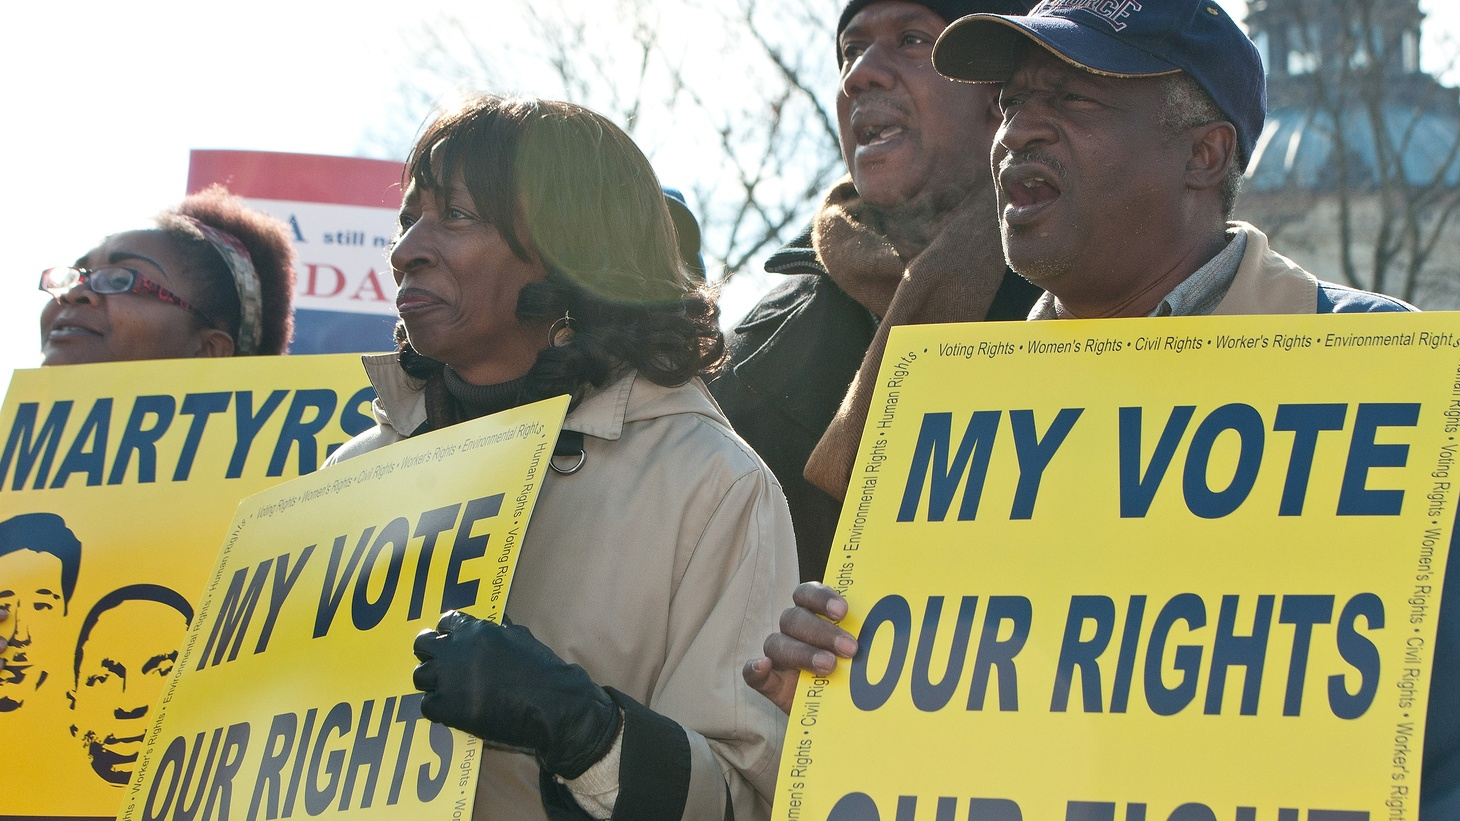 Just months away from primary voting in the next presidential election, the voting rights of blacks and Latinos are the subject of charges and counter-charges.